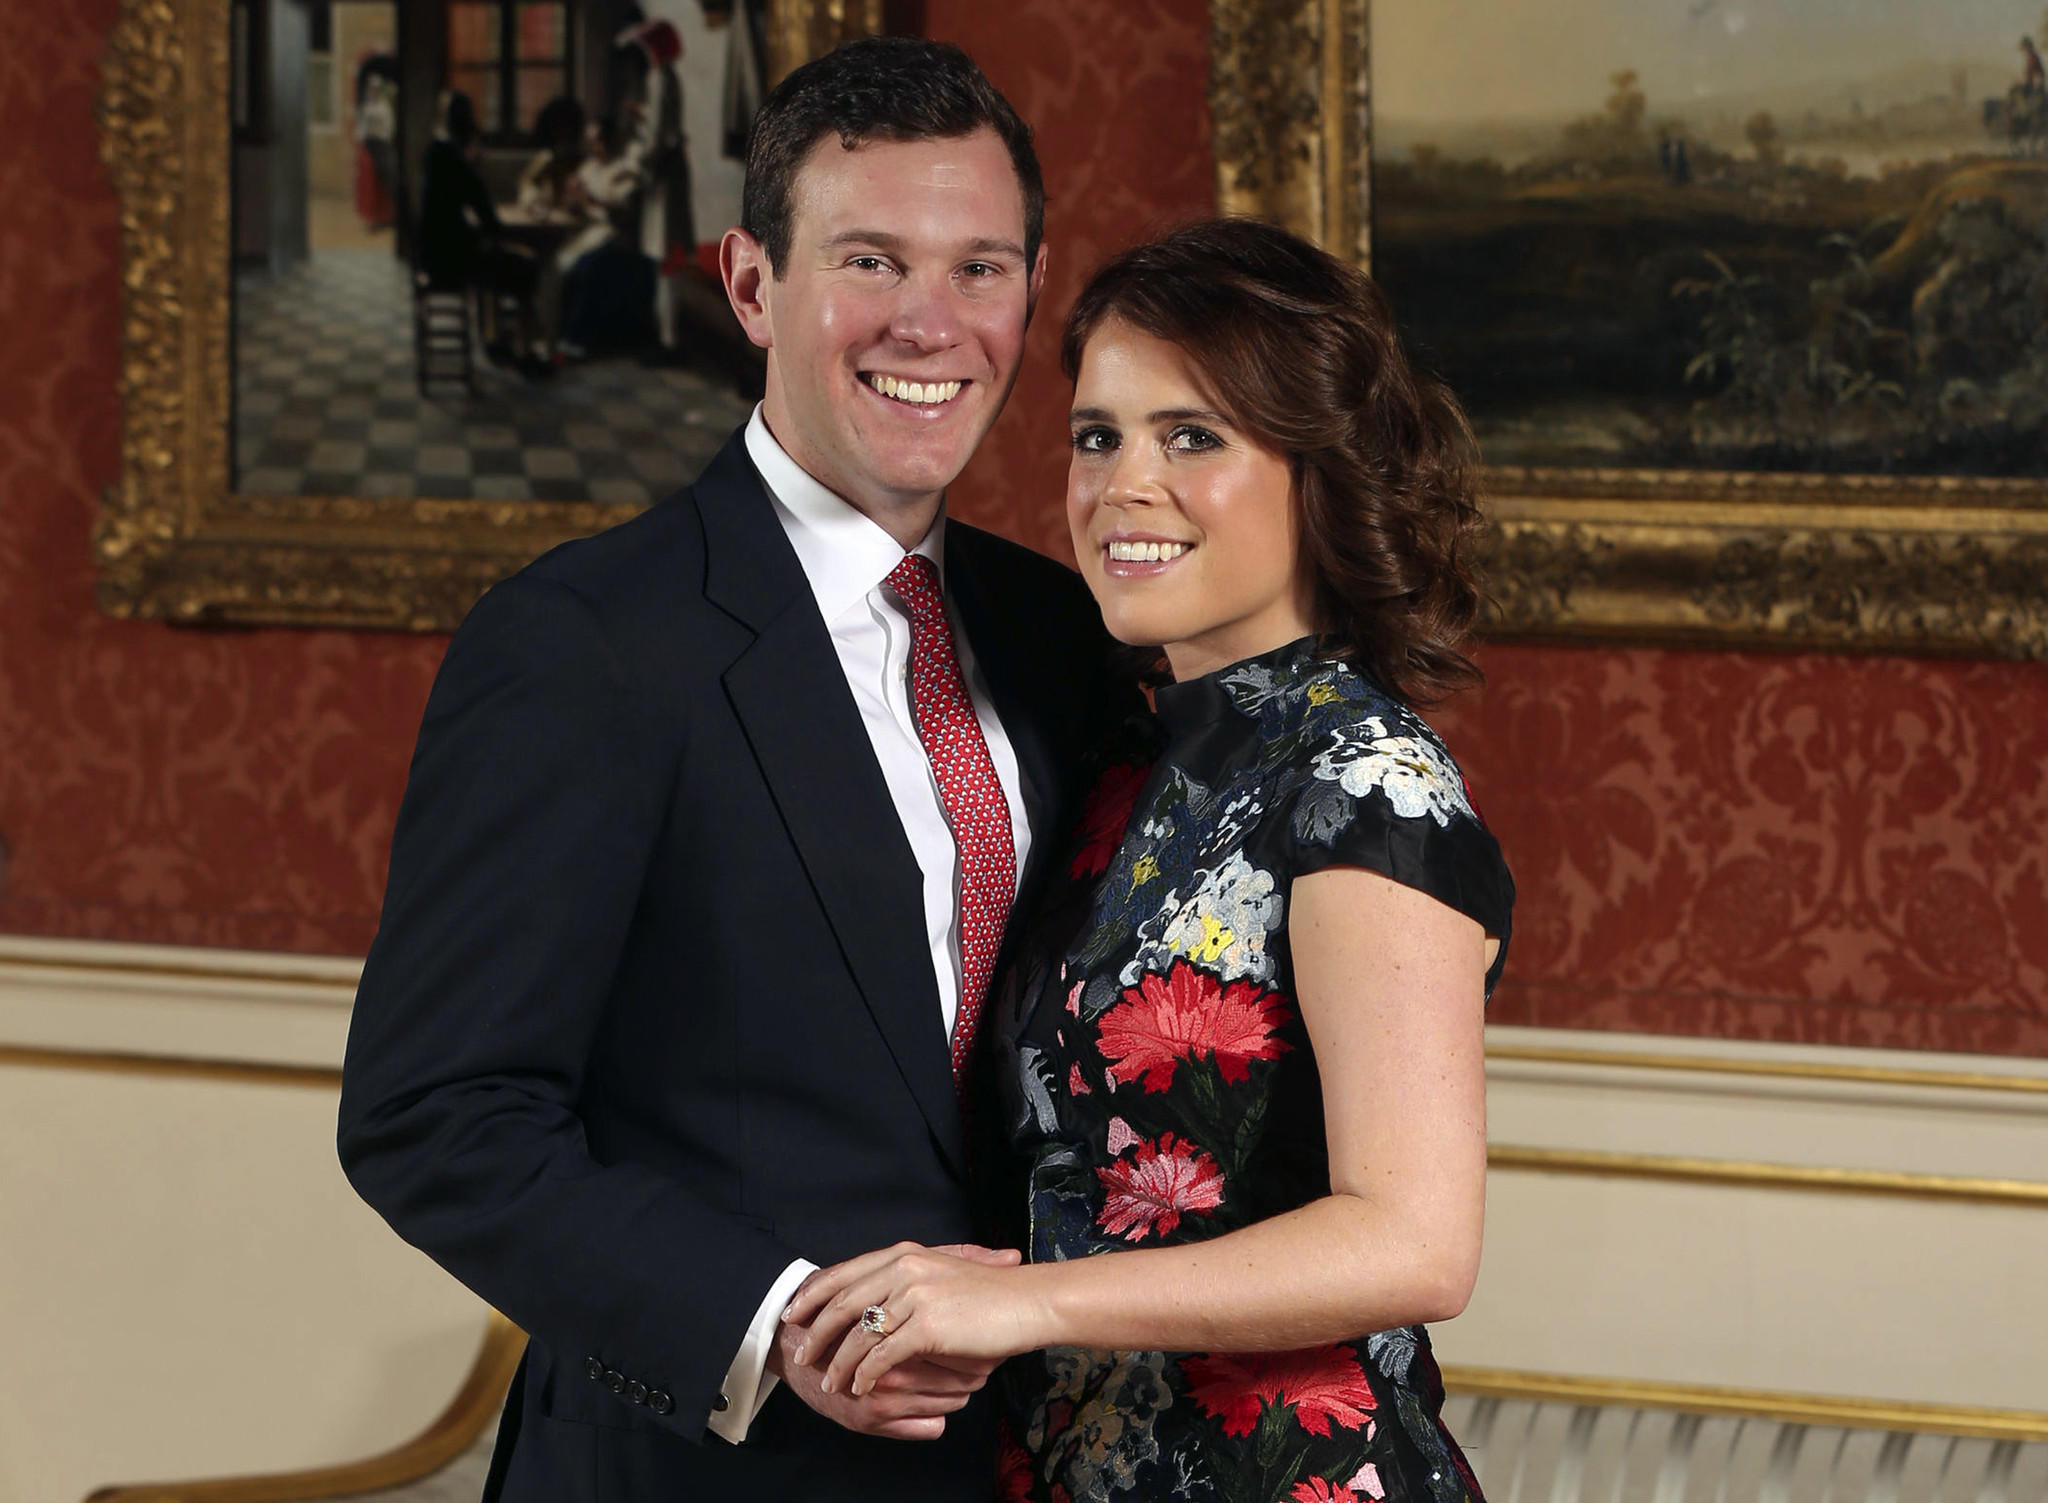 Princess Eugenie is engaged and tying the knot in the same venue as her cousin Prince Harry